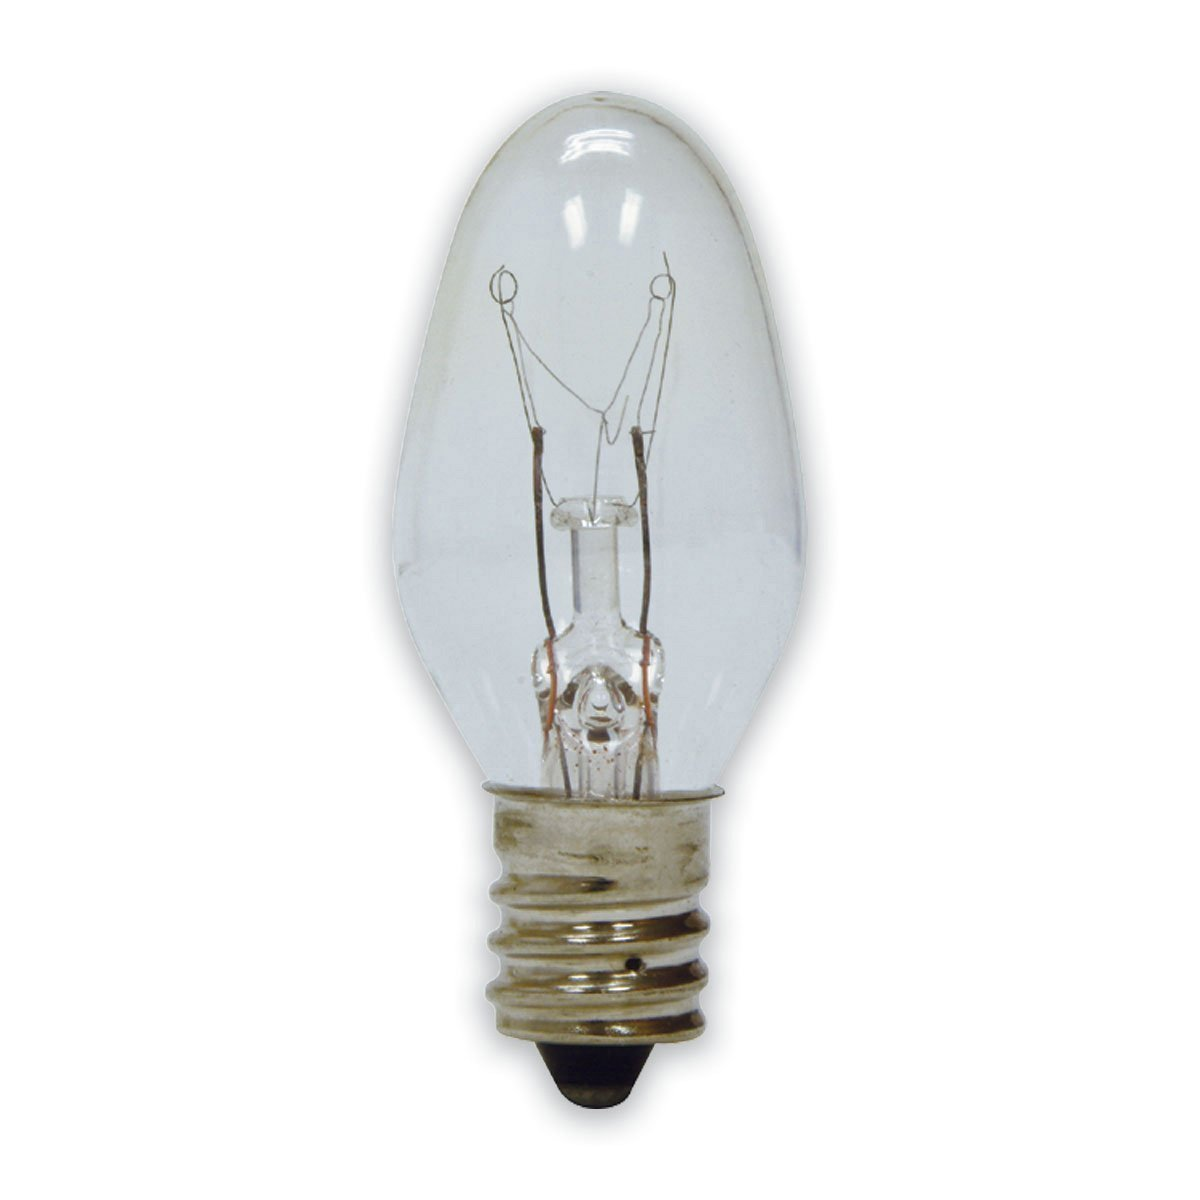 15 Watt Night Light Bulbs: Buy 15 Watt Bulb (4-Pack) Replacement for Scentsy Plug-In Warmer KE-15WLITE  Online at Low Prices in India - Amazon.in,Lighting